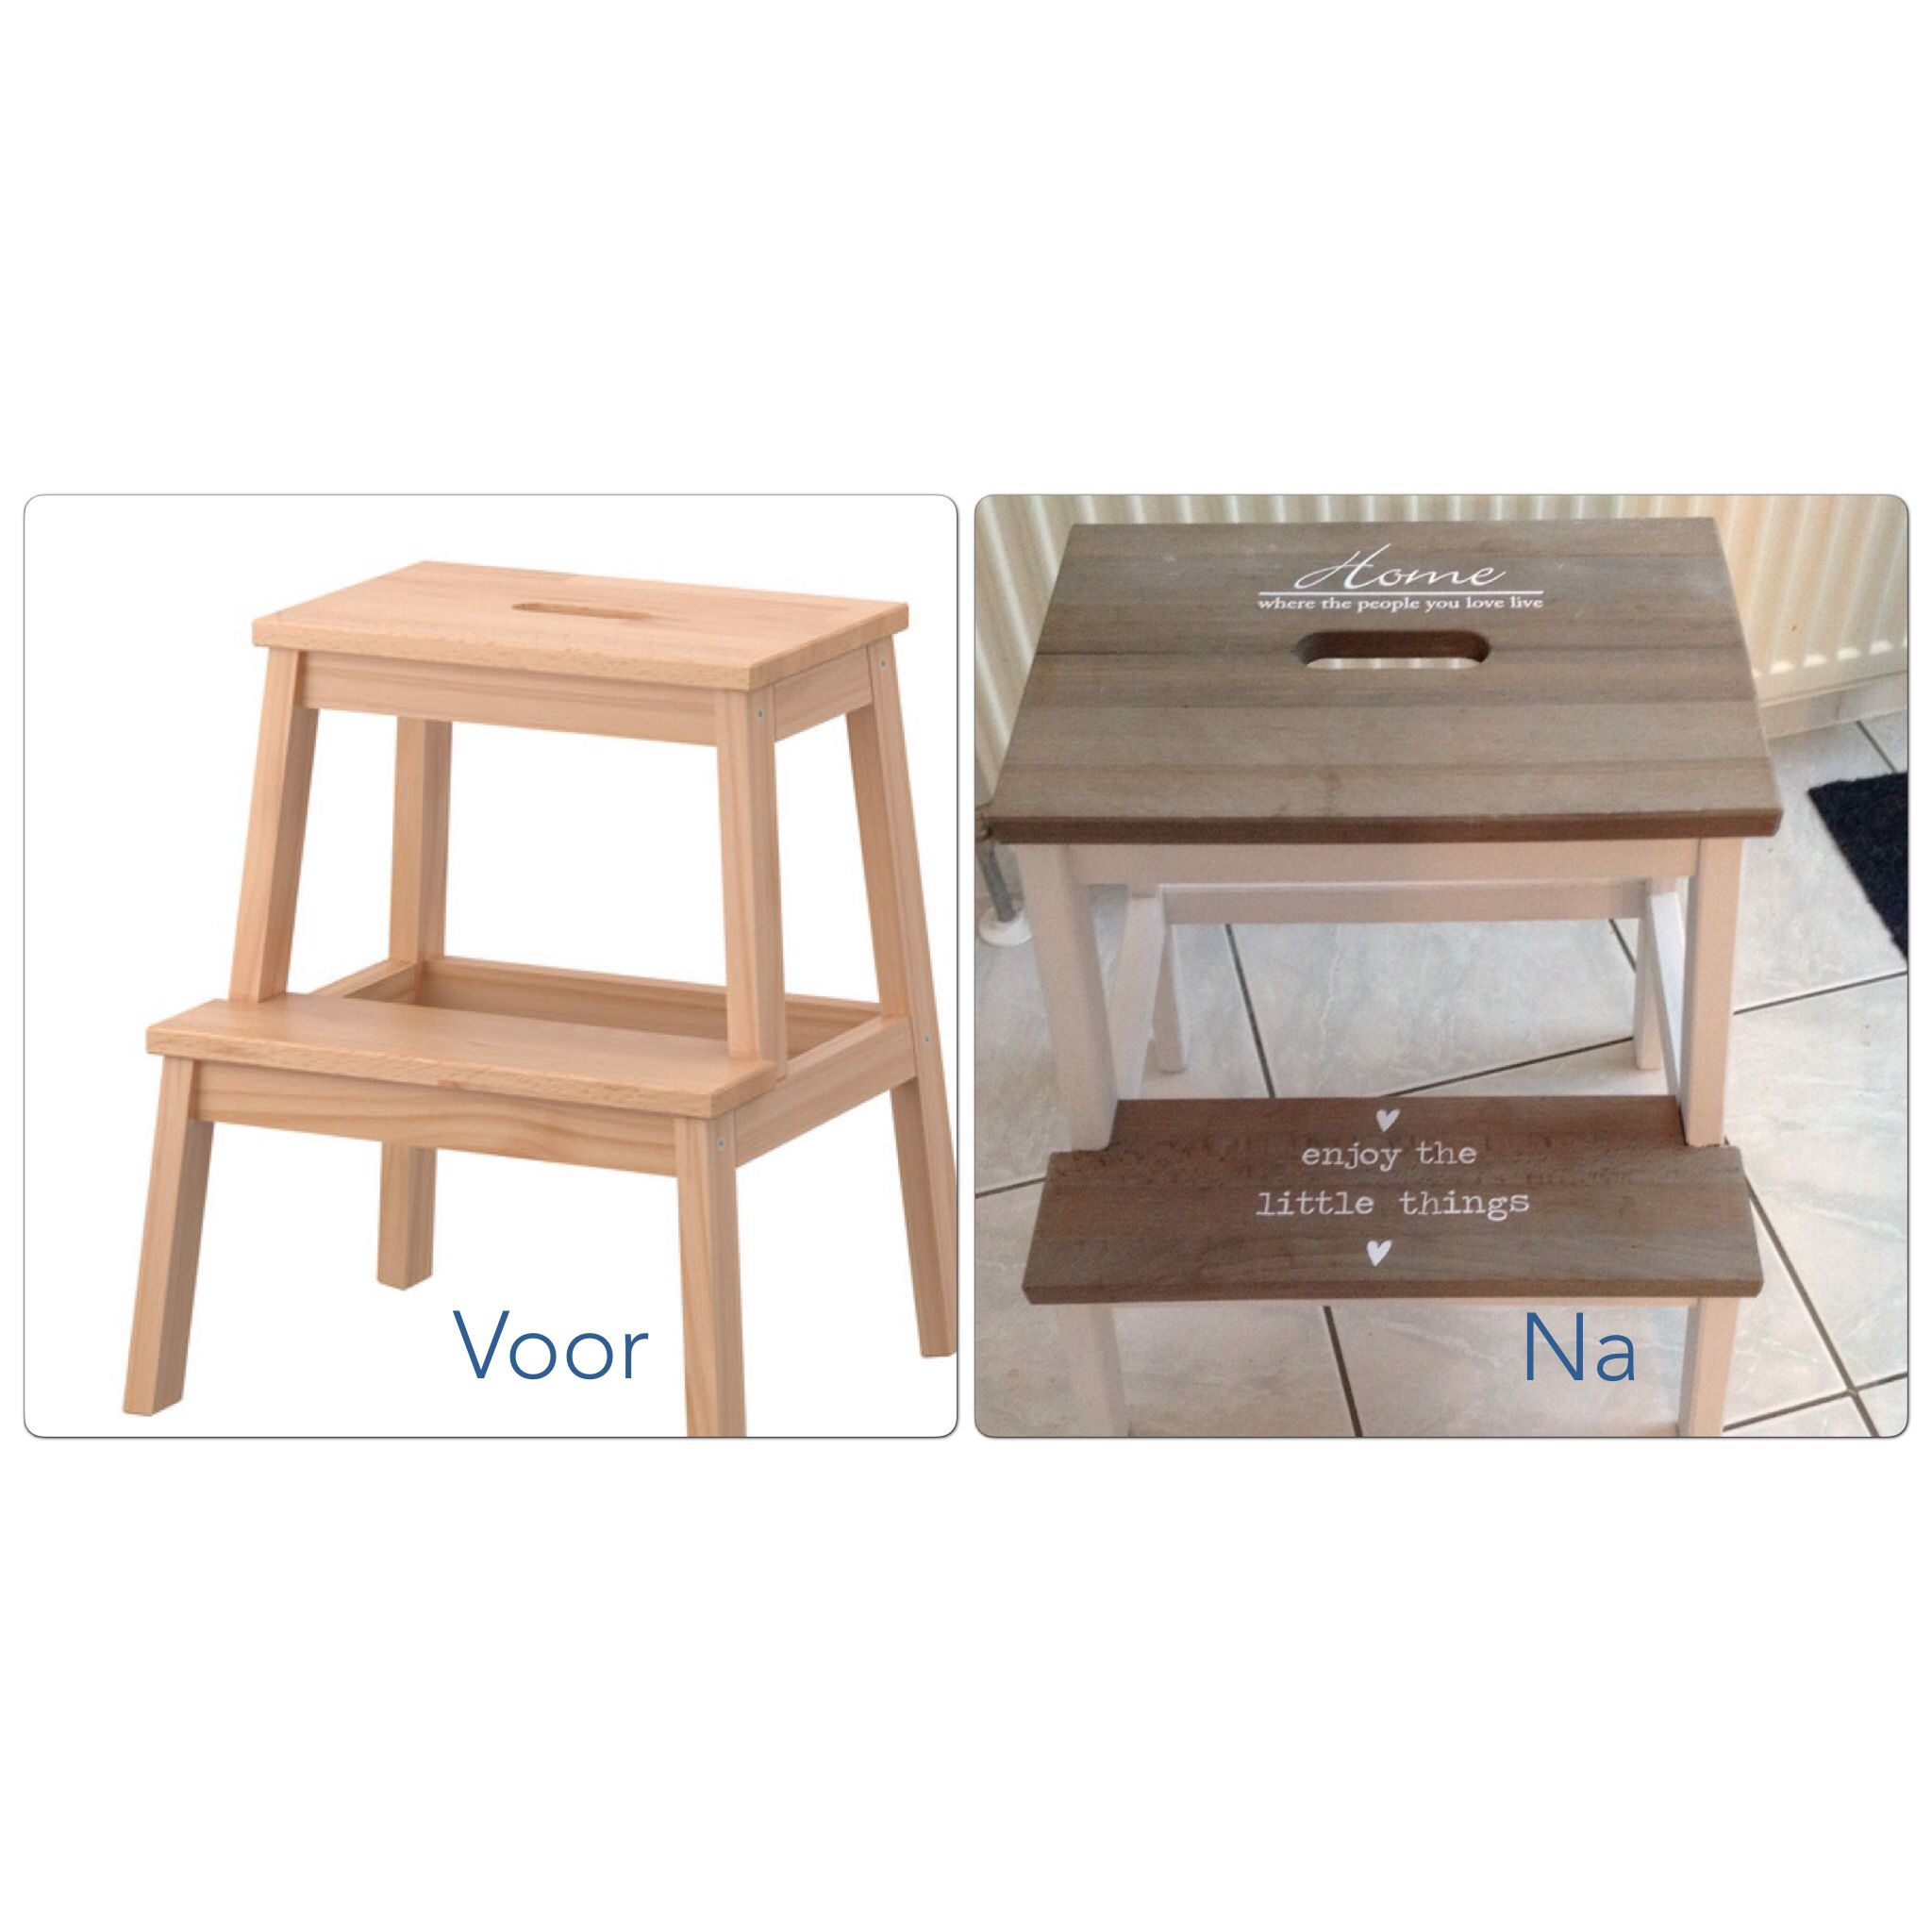 I already have this stool, so this would be an easy little project ...